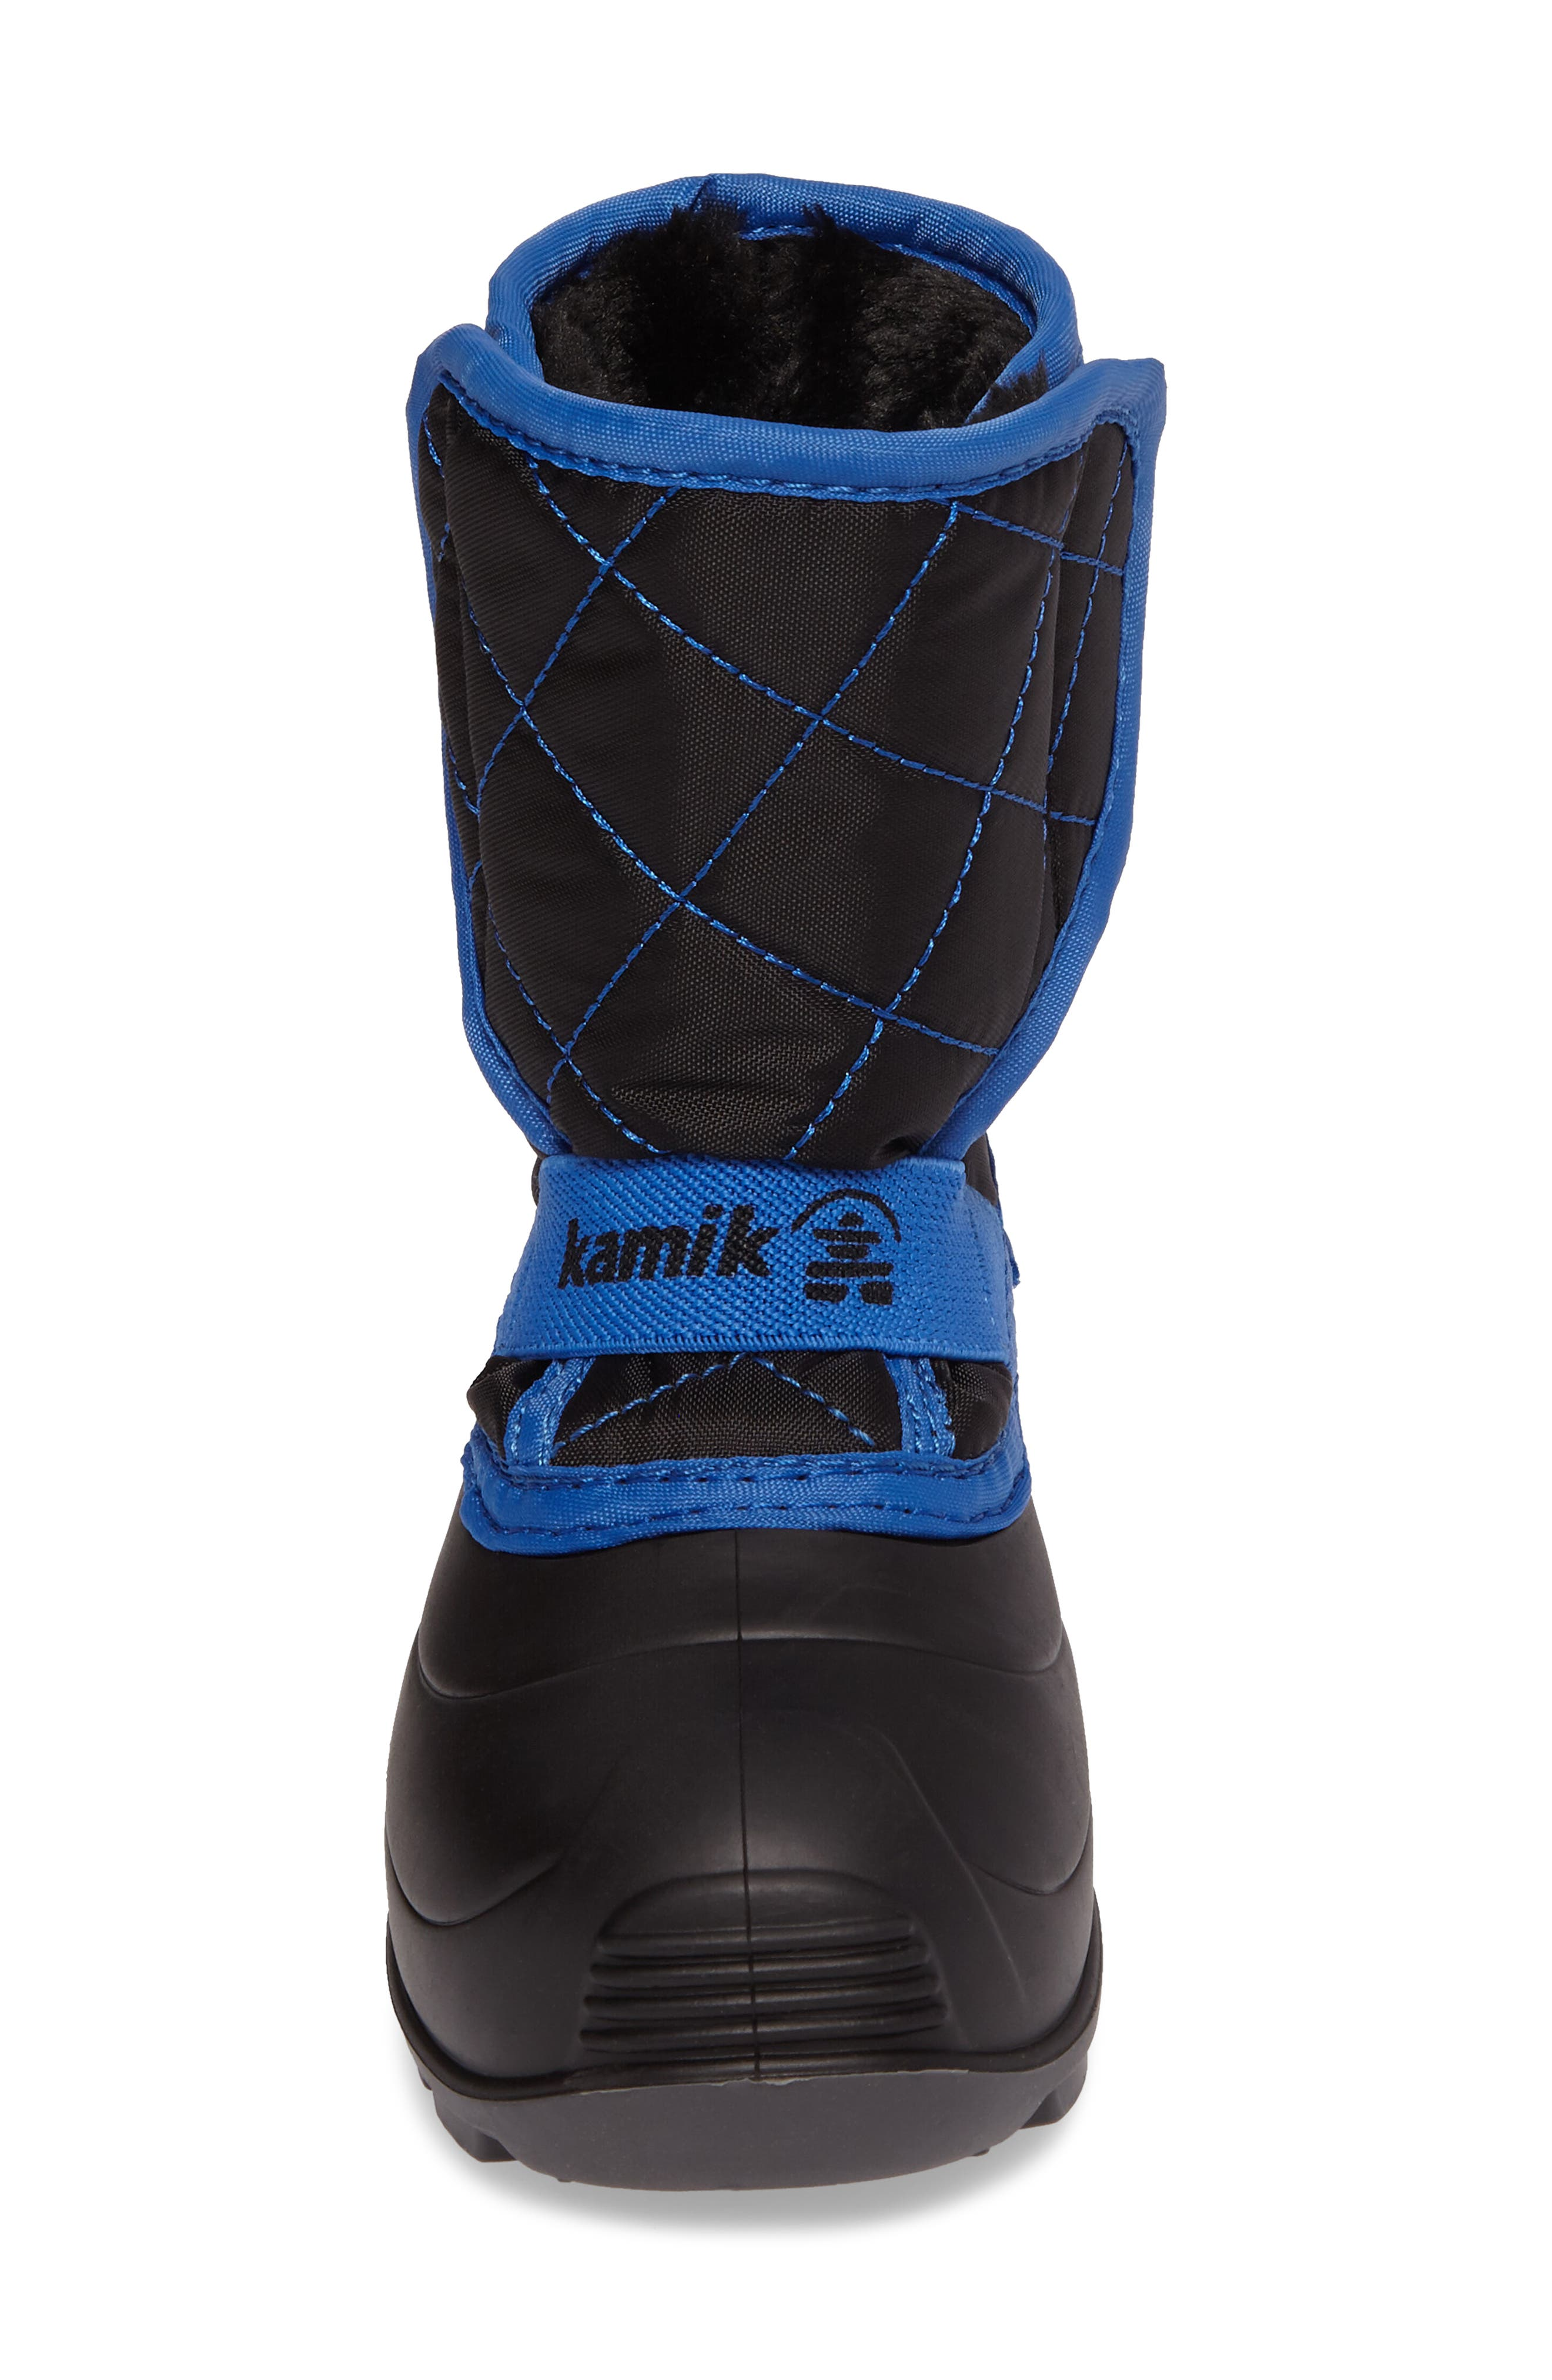 Pika2 Faux Fur Insulated Waterproof Snow Boot,                             Alternate thumbnail 4, color,                             010